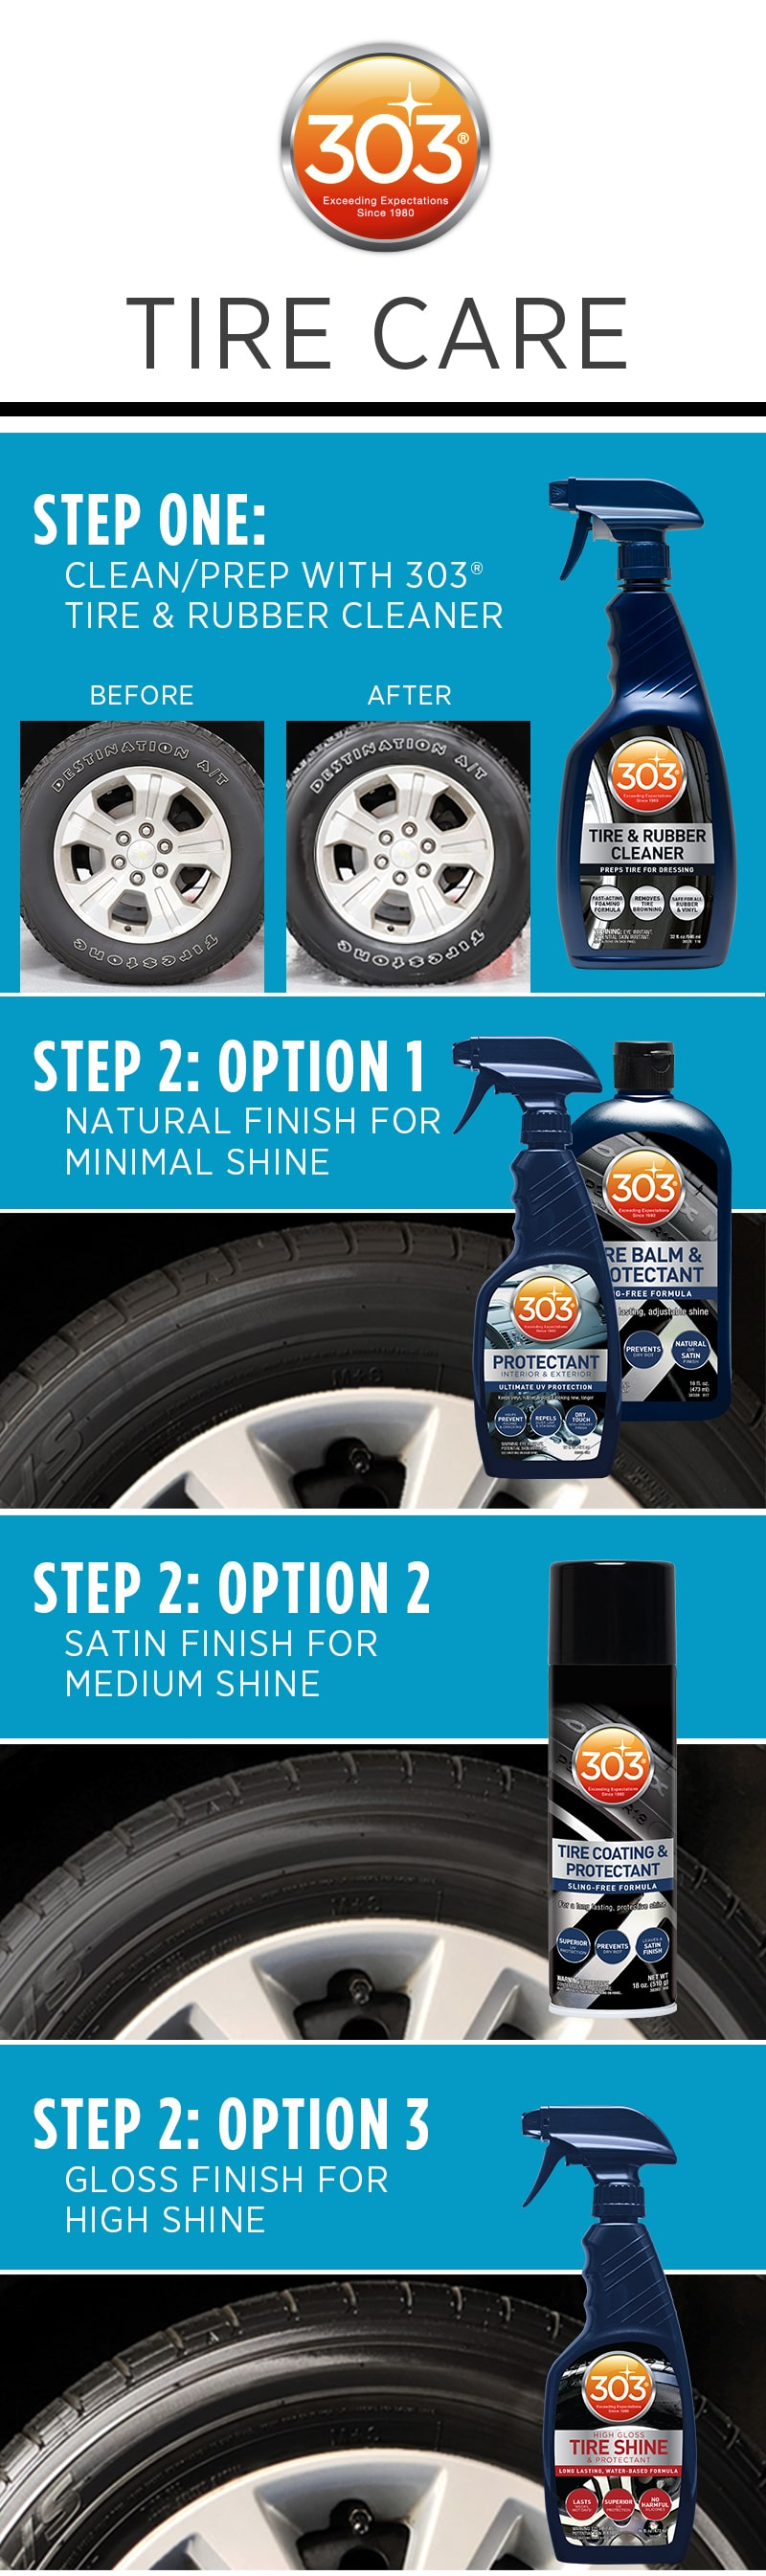 tire-care-infographic-min